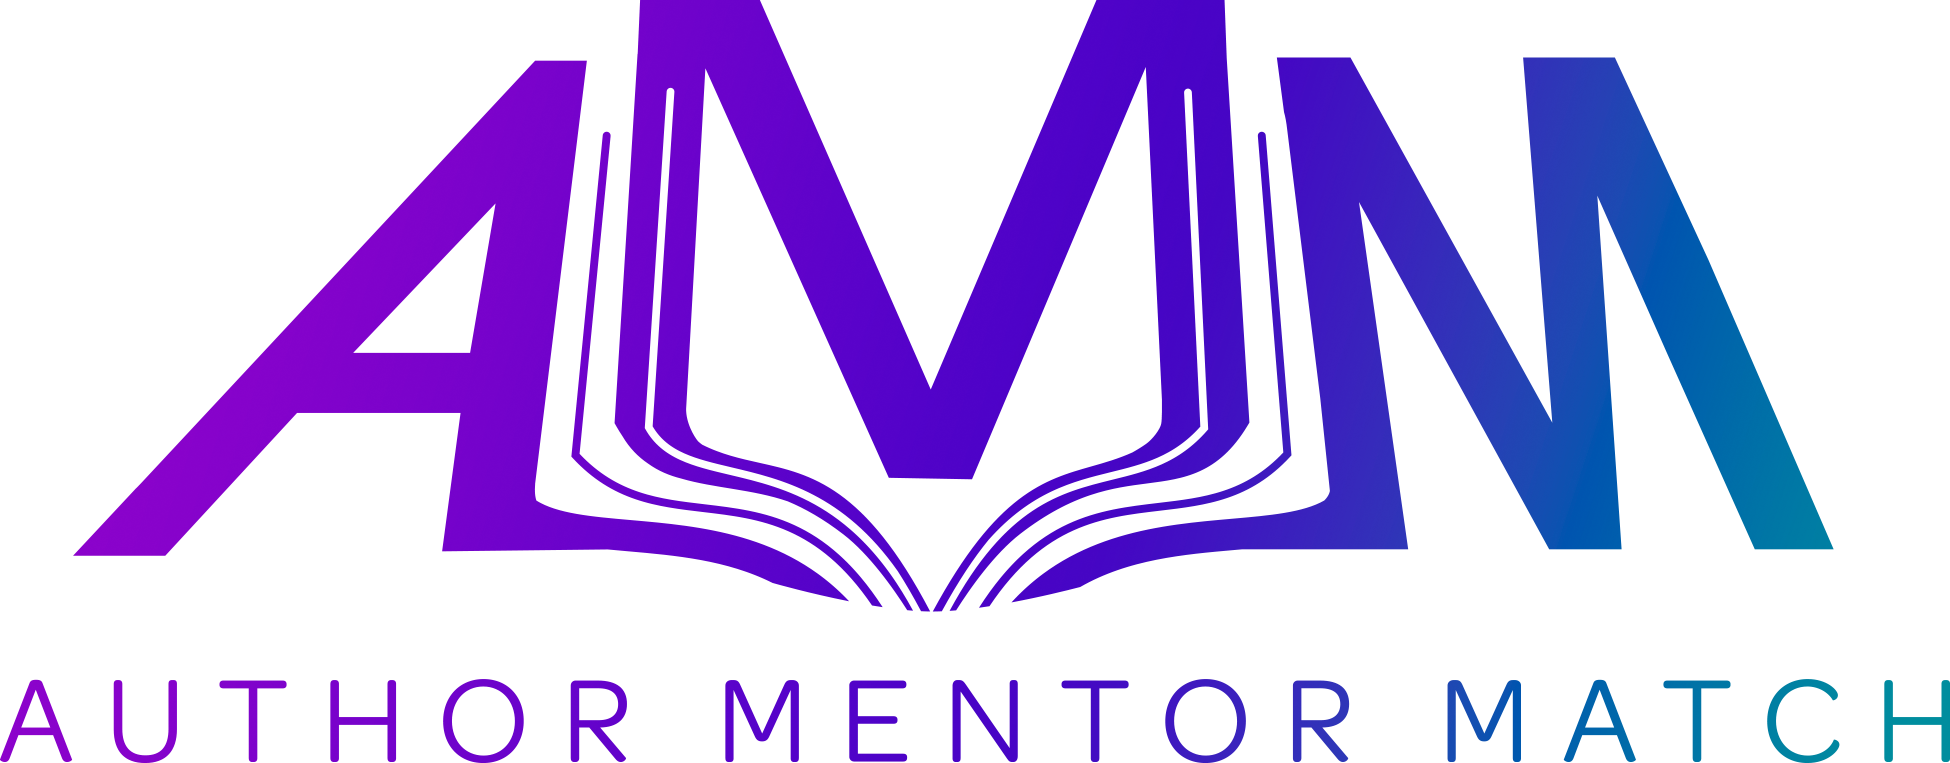 Round 4 png. Mentor announcement author match